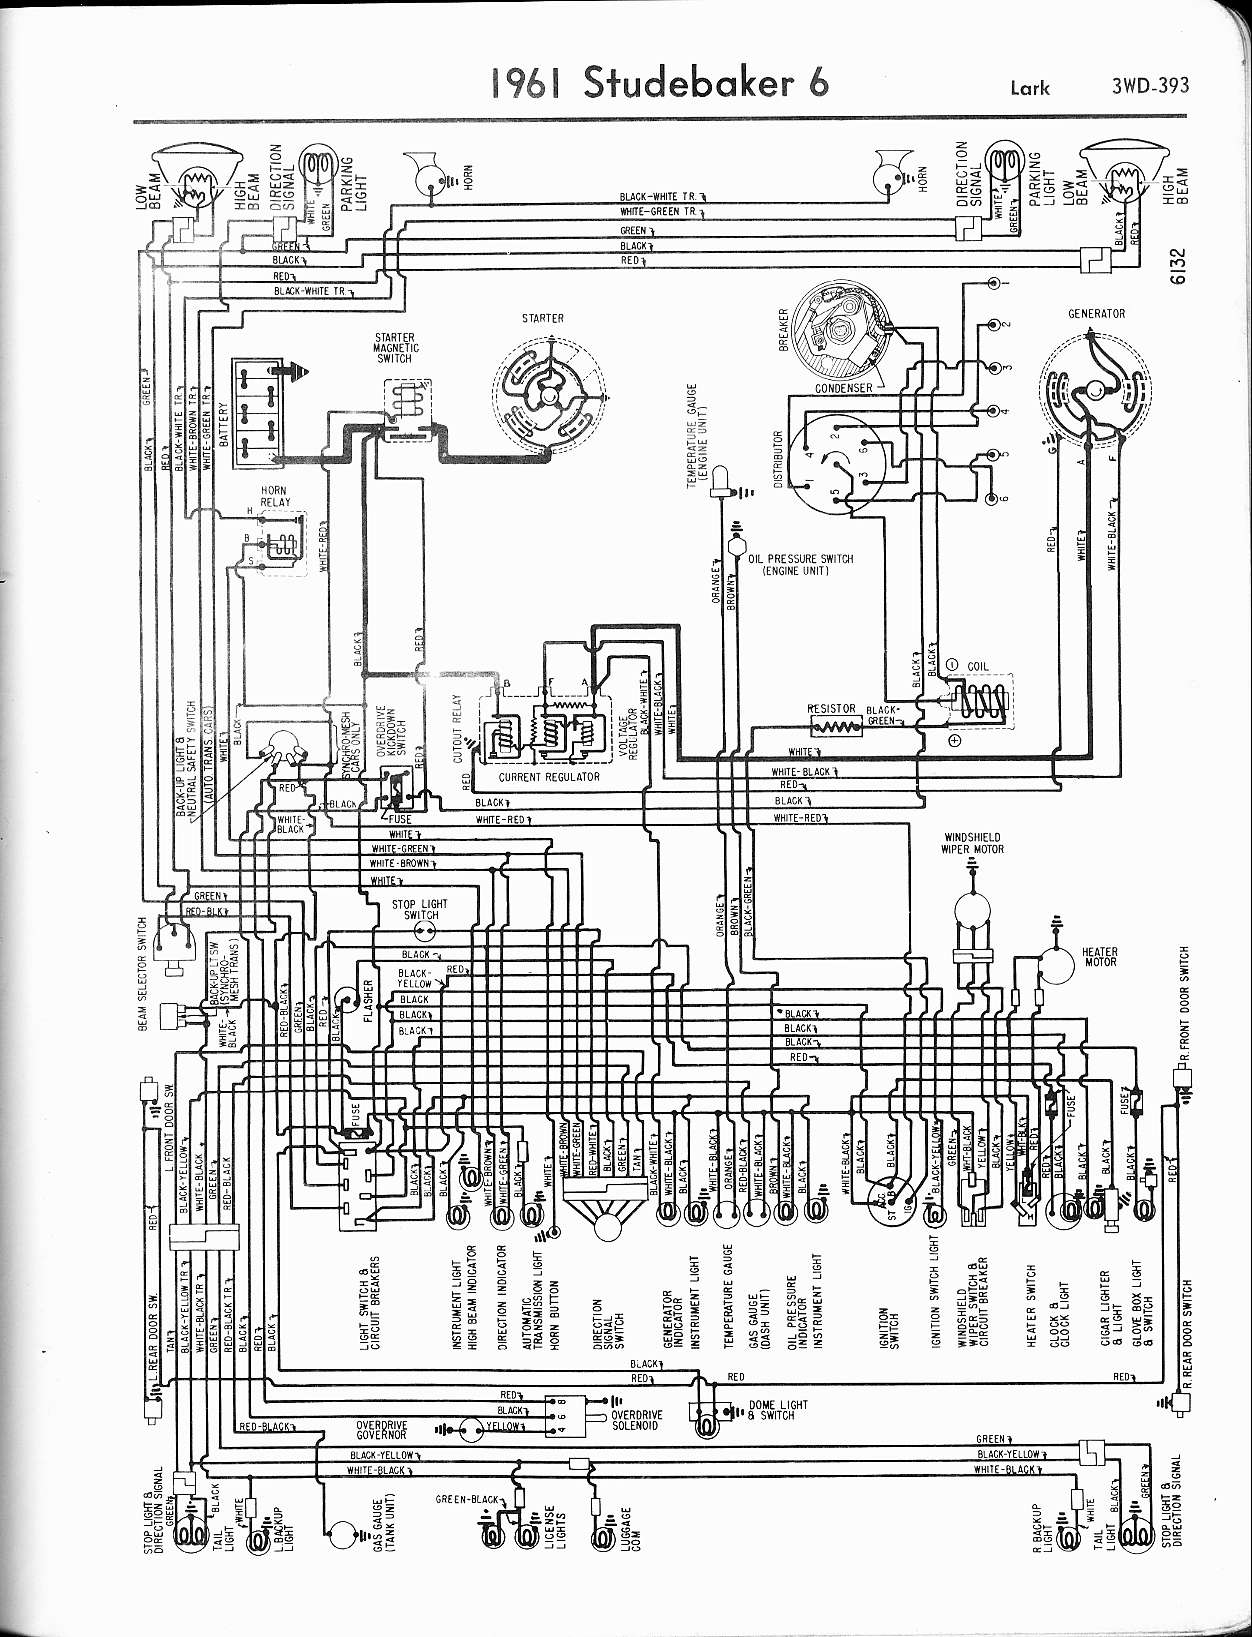 1950 studebaker wiring diagram free picture schematic studebaker wiring diagrams studebaker wiring diagrams - the old car manual project